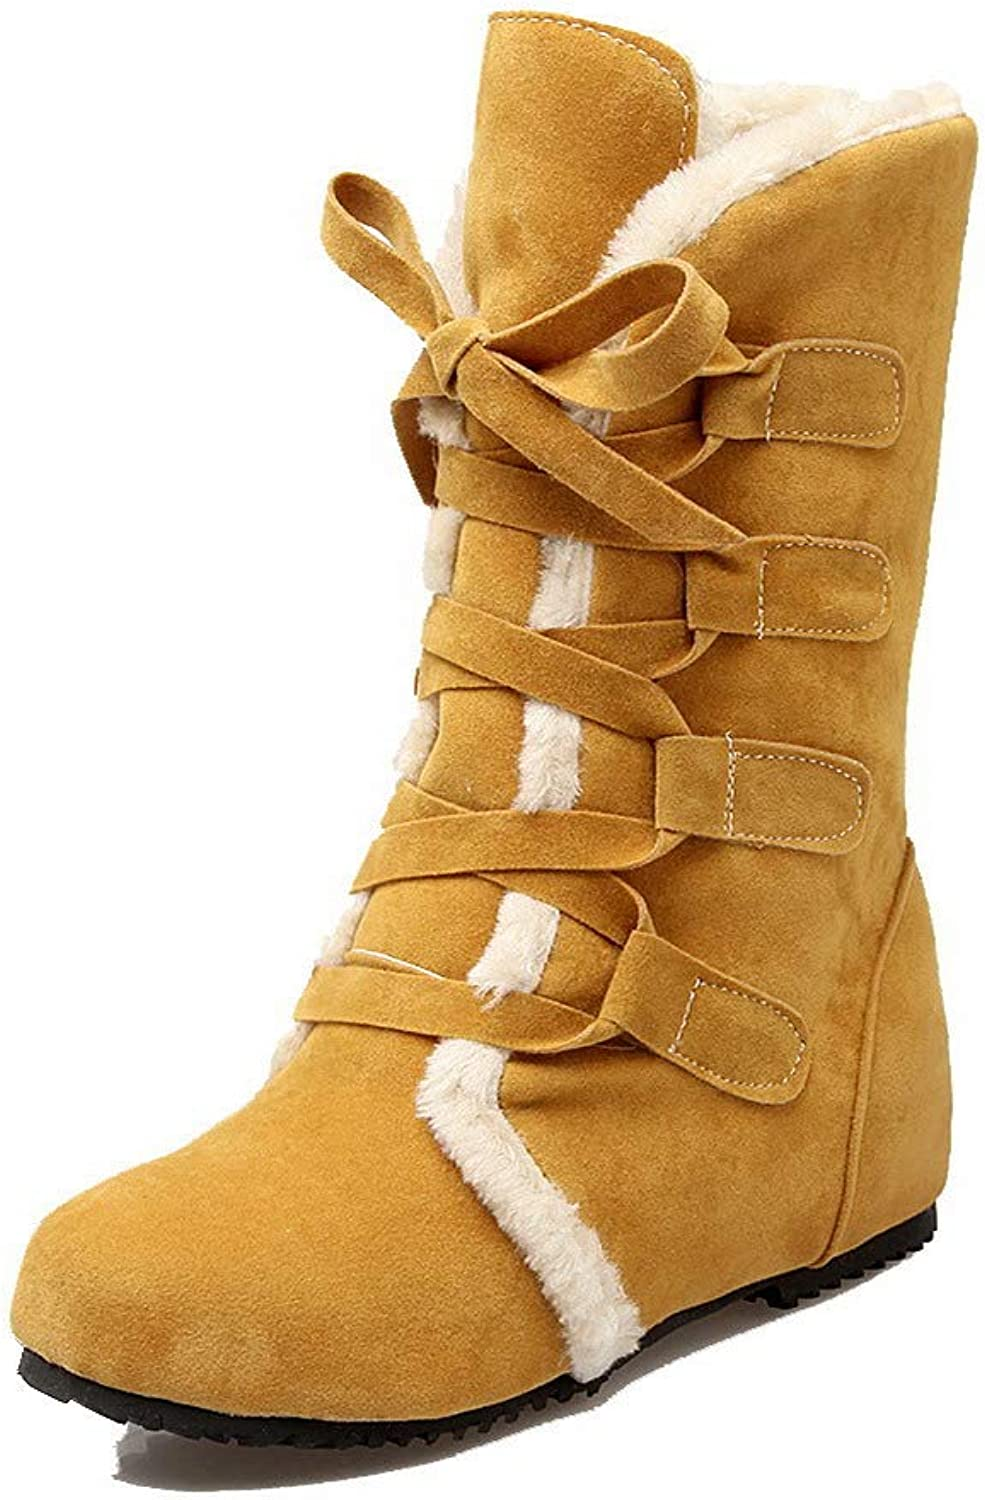 WeenFashion Women's Low-Top Solid Lace-Up Round-Toe Low-Heels Boots, AMGXX119774